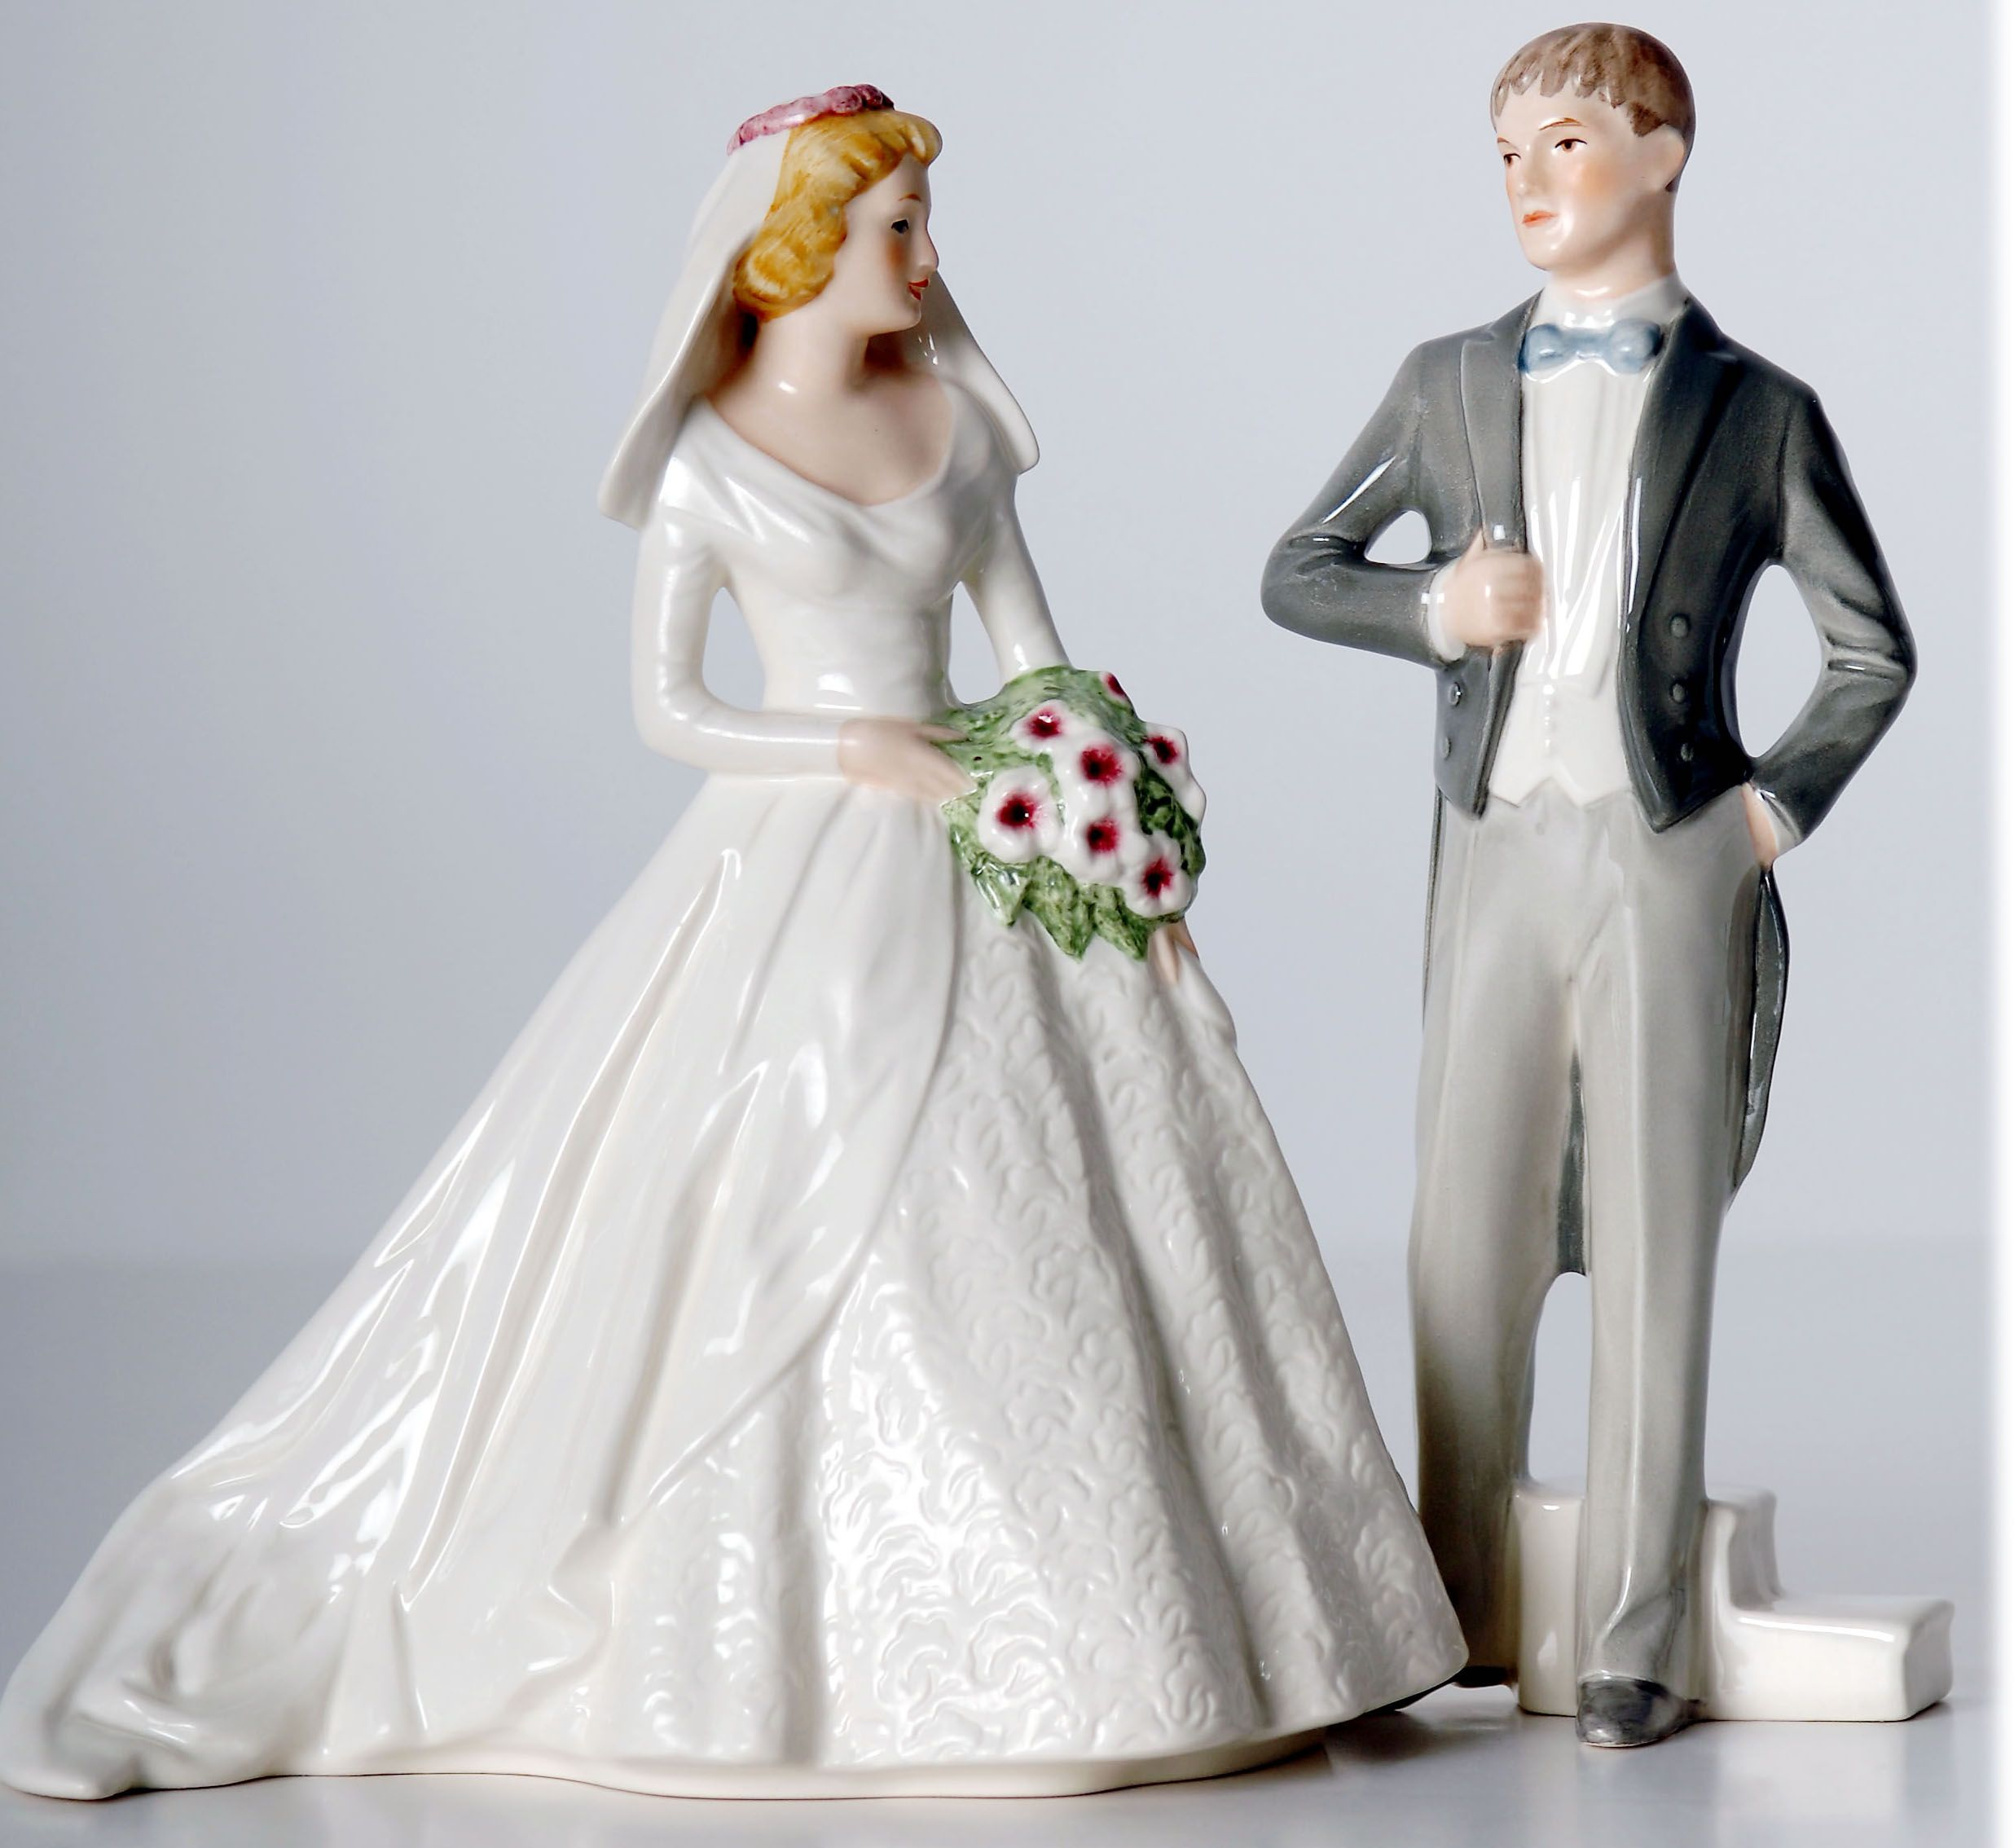 Vintage Romantic Funny Wedding Cake Toppers